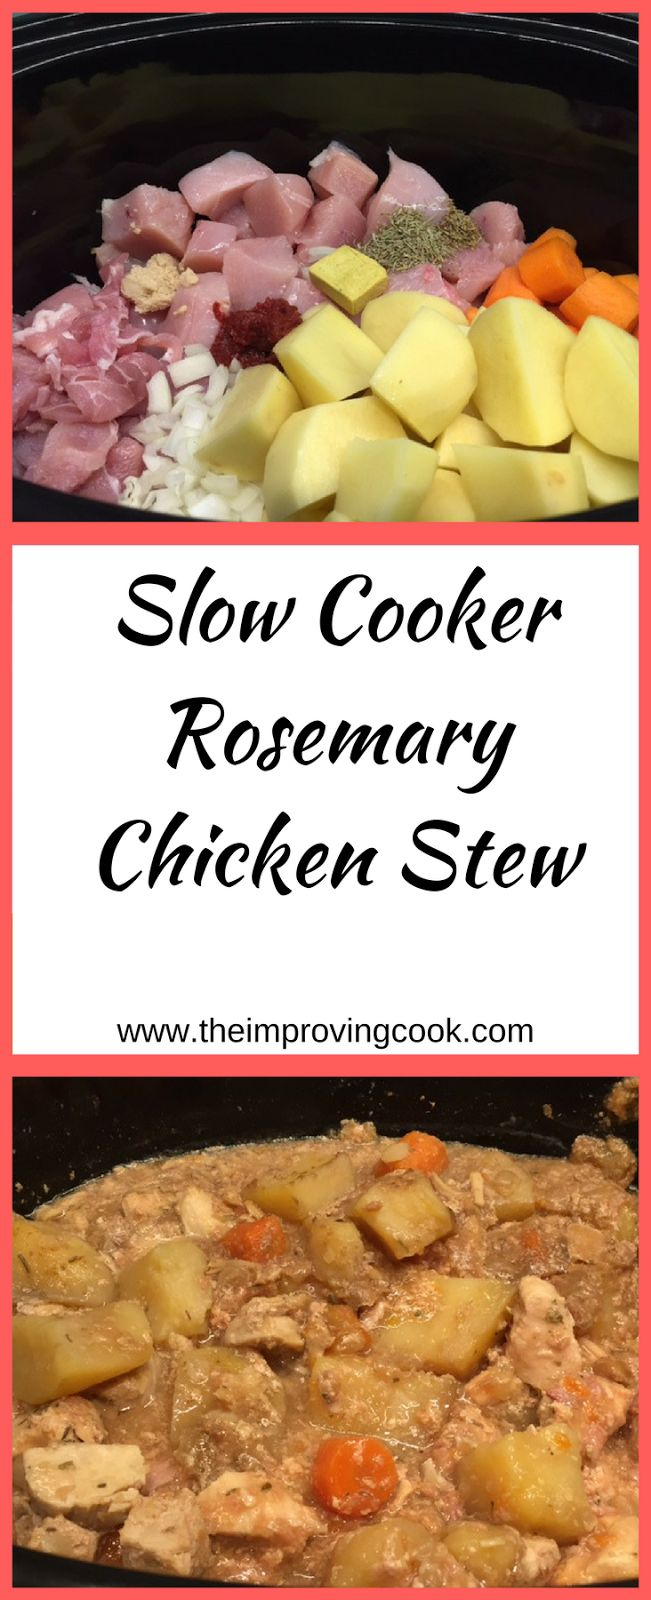 The change in temperature had me craving something warm and comforting, so I made a nice big batch of chicken stew in the slow cooker last week. Chicken stew is full of flavour just cooking in its own stock, but I wanted to boost that even more by adding rosemary.